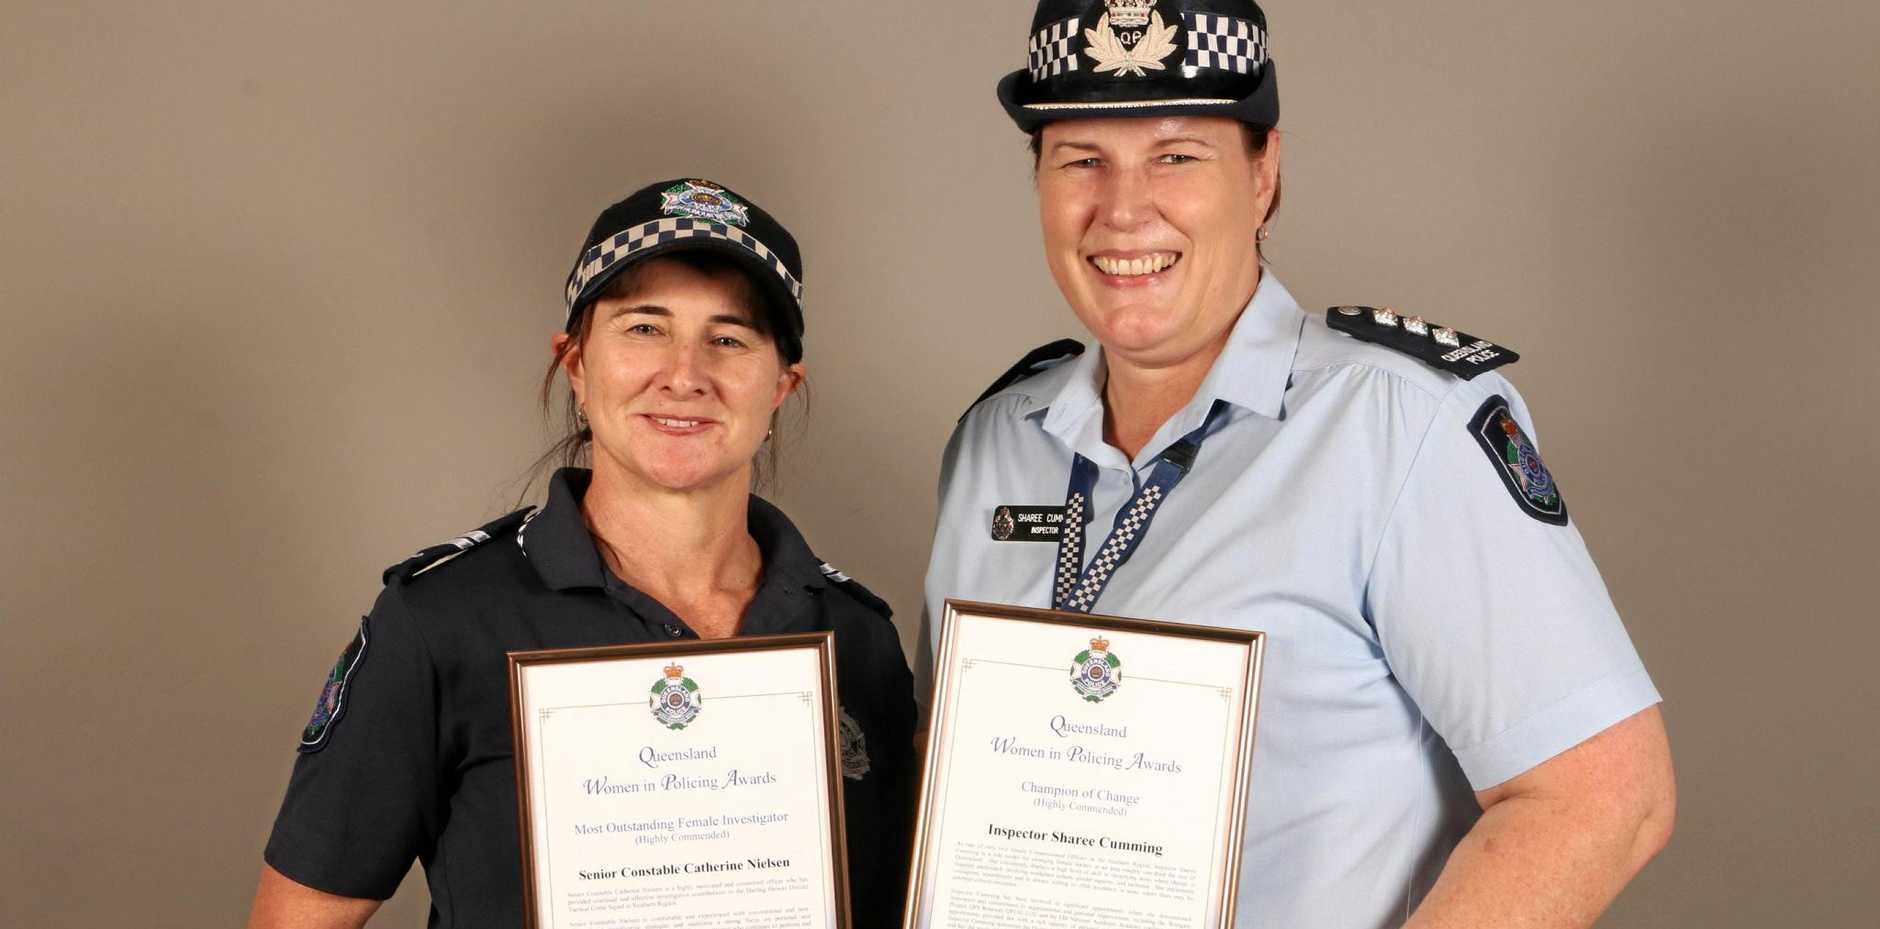 OUTSTANDING: Senior Constable Cath Neilsen of Toowoomba Tactical Crime Squad and Inspector Sharee Cumming of Country Patrol and Support Services.